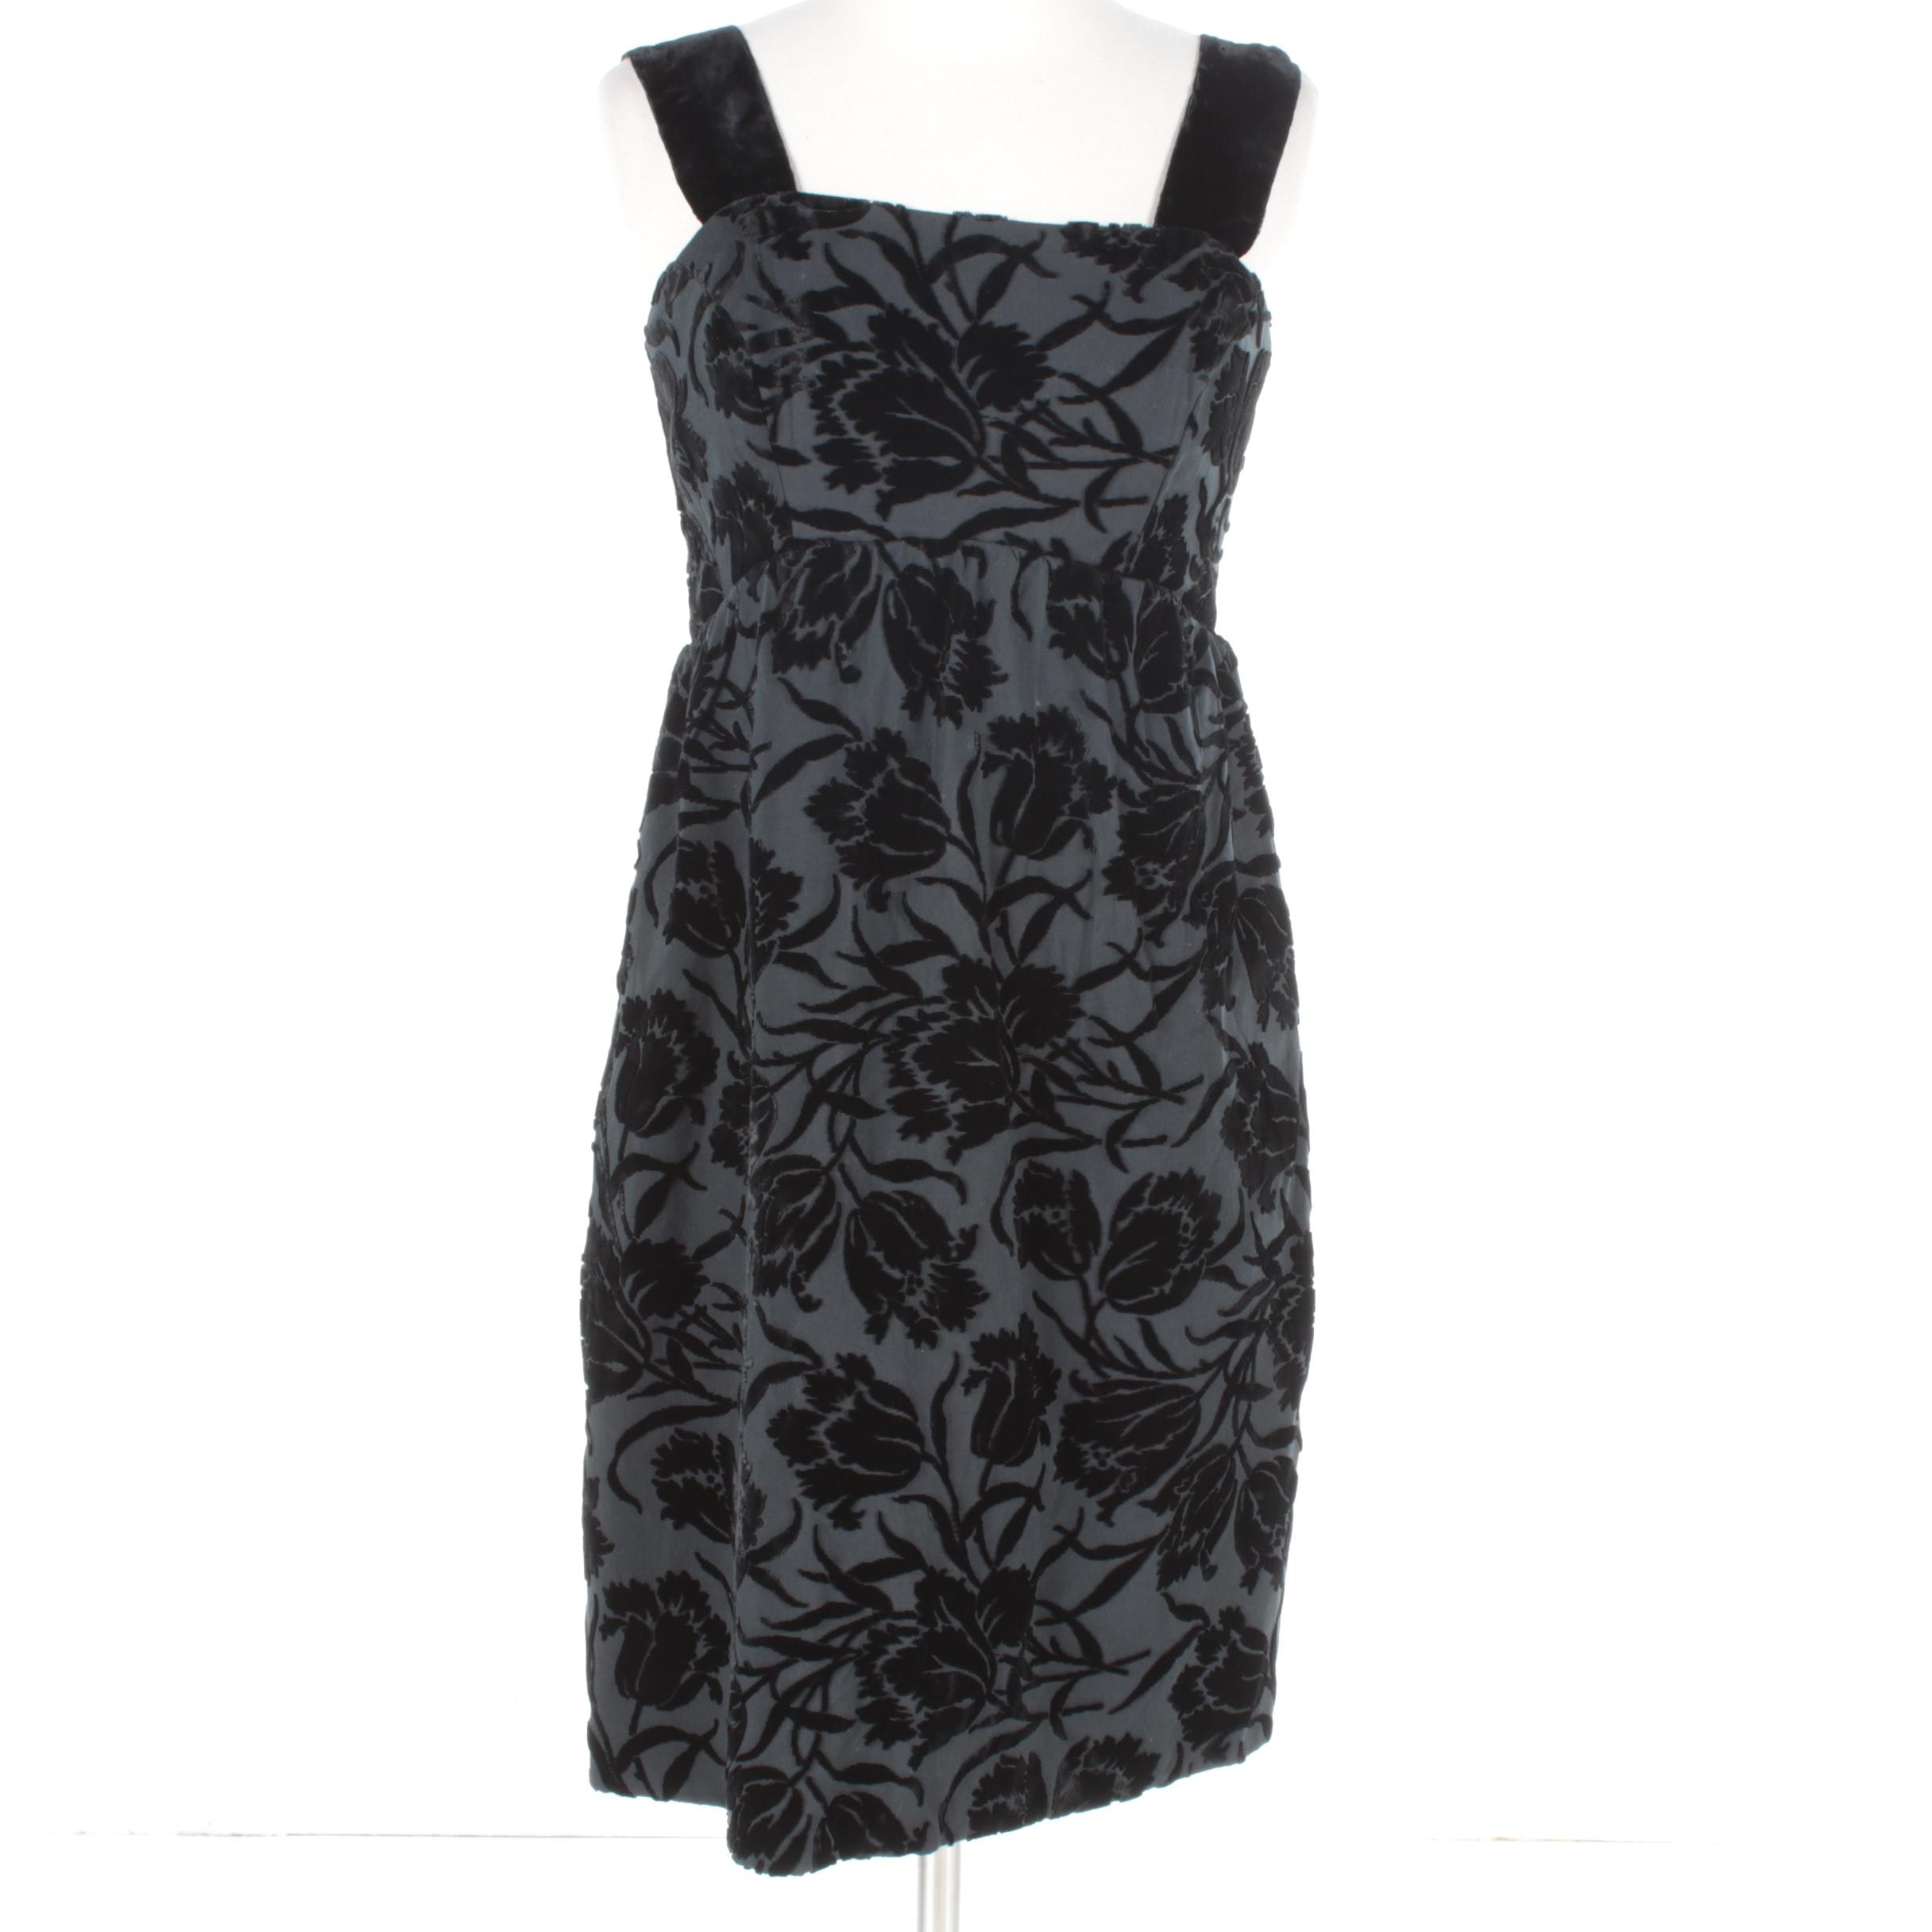 Flocked Floral Black Velvet Sleeveless Cocktail Dress